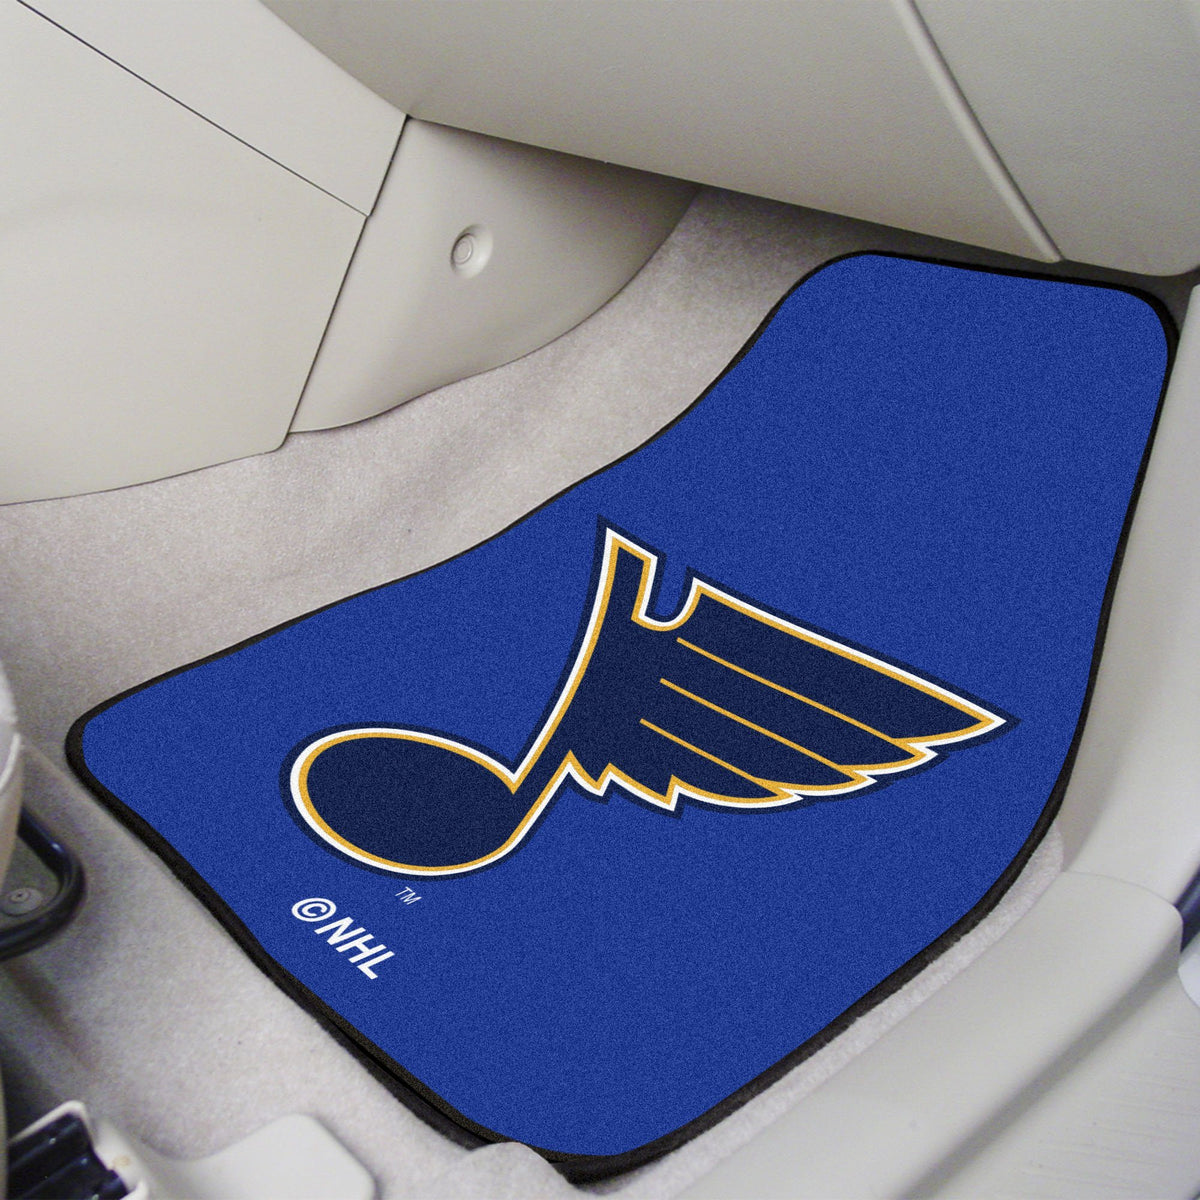 NHL - Carpet Car Mat, 2-Piece Set NHL Mats, Front Car Mats, 2-pc Carpet Car Mat Set, NHL, Auto Fan Mats St. Louis Blues